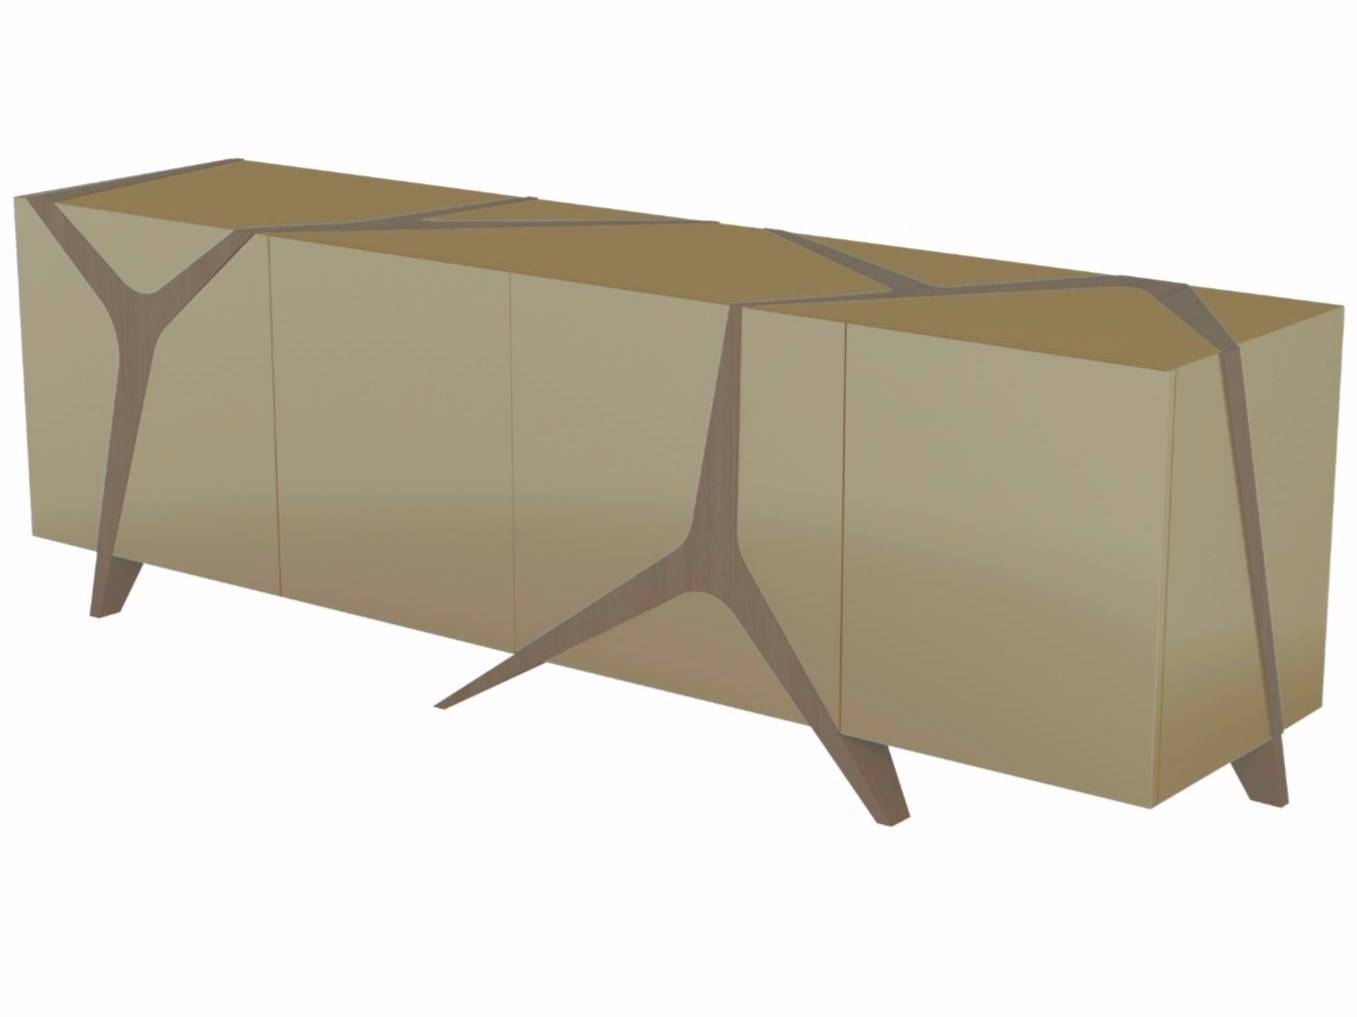 Inspiration about Rosace | Sideboard Les Contemporains Collectionroche Bobois Regarding Latest Roche Bobois Sideboards (#4 of 15)